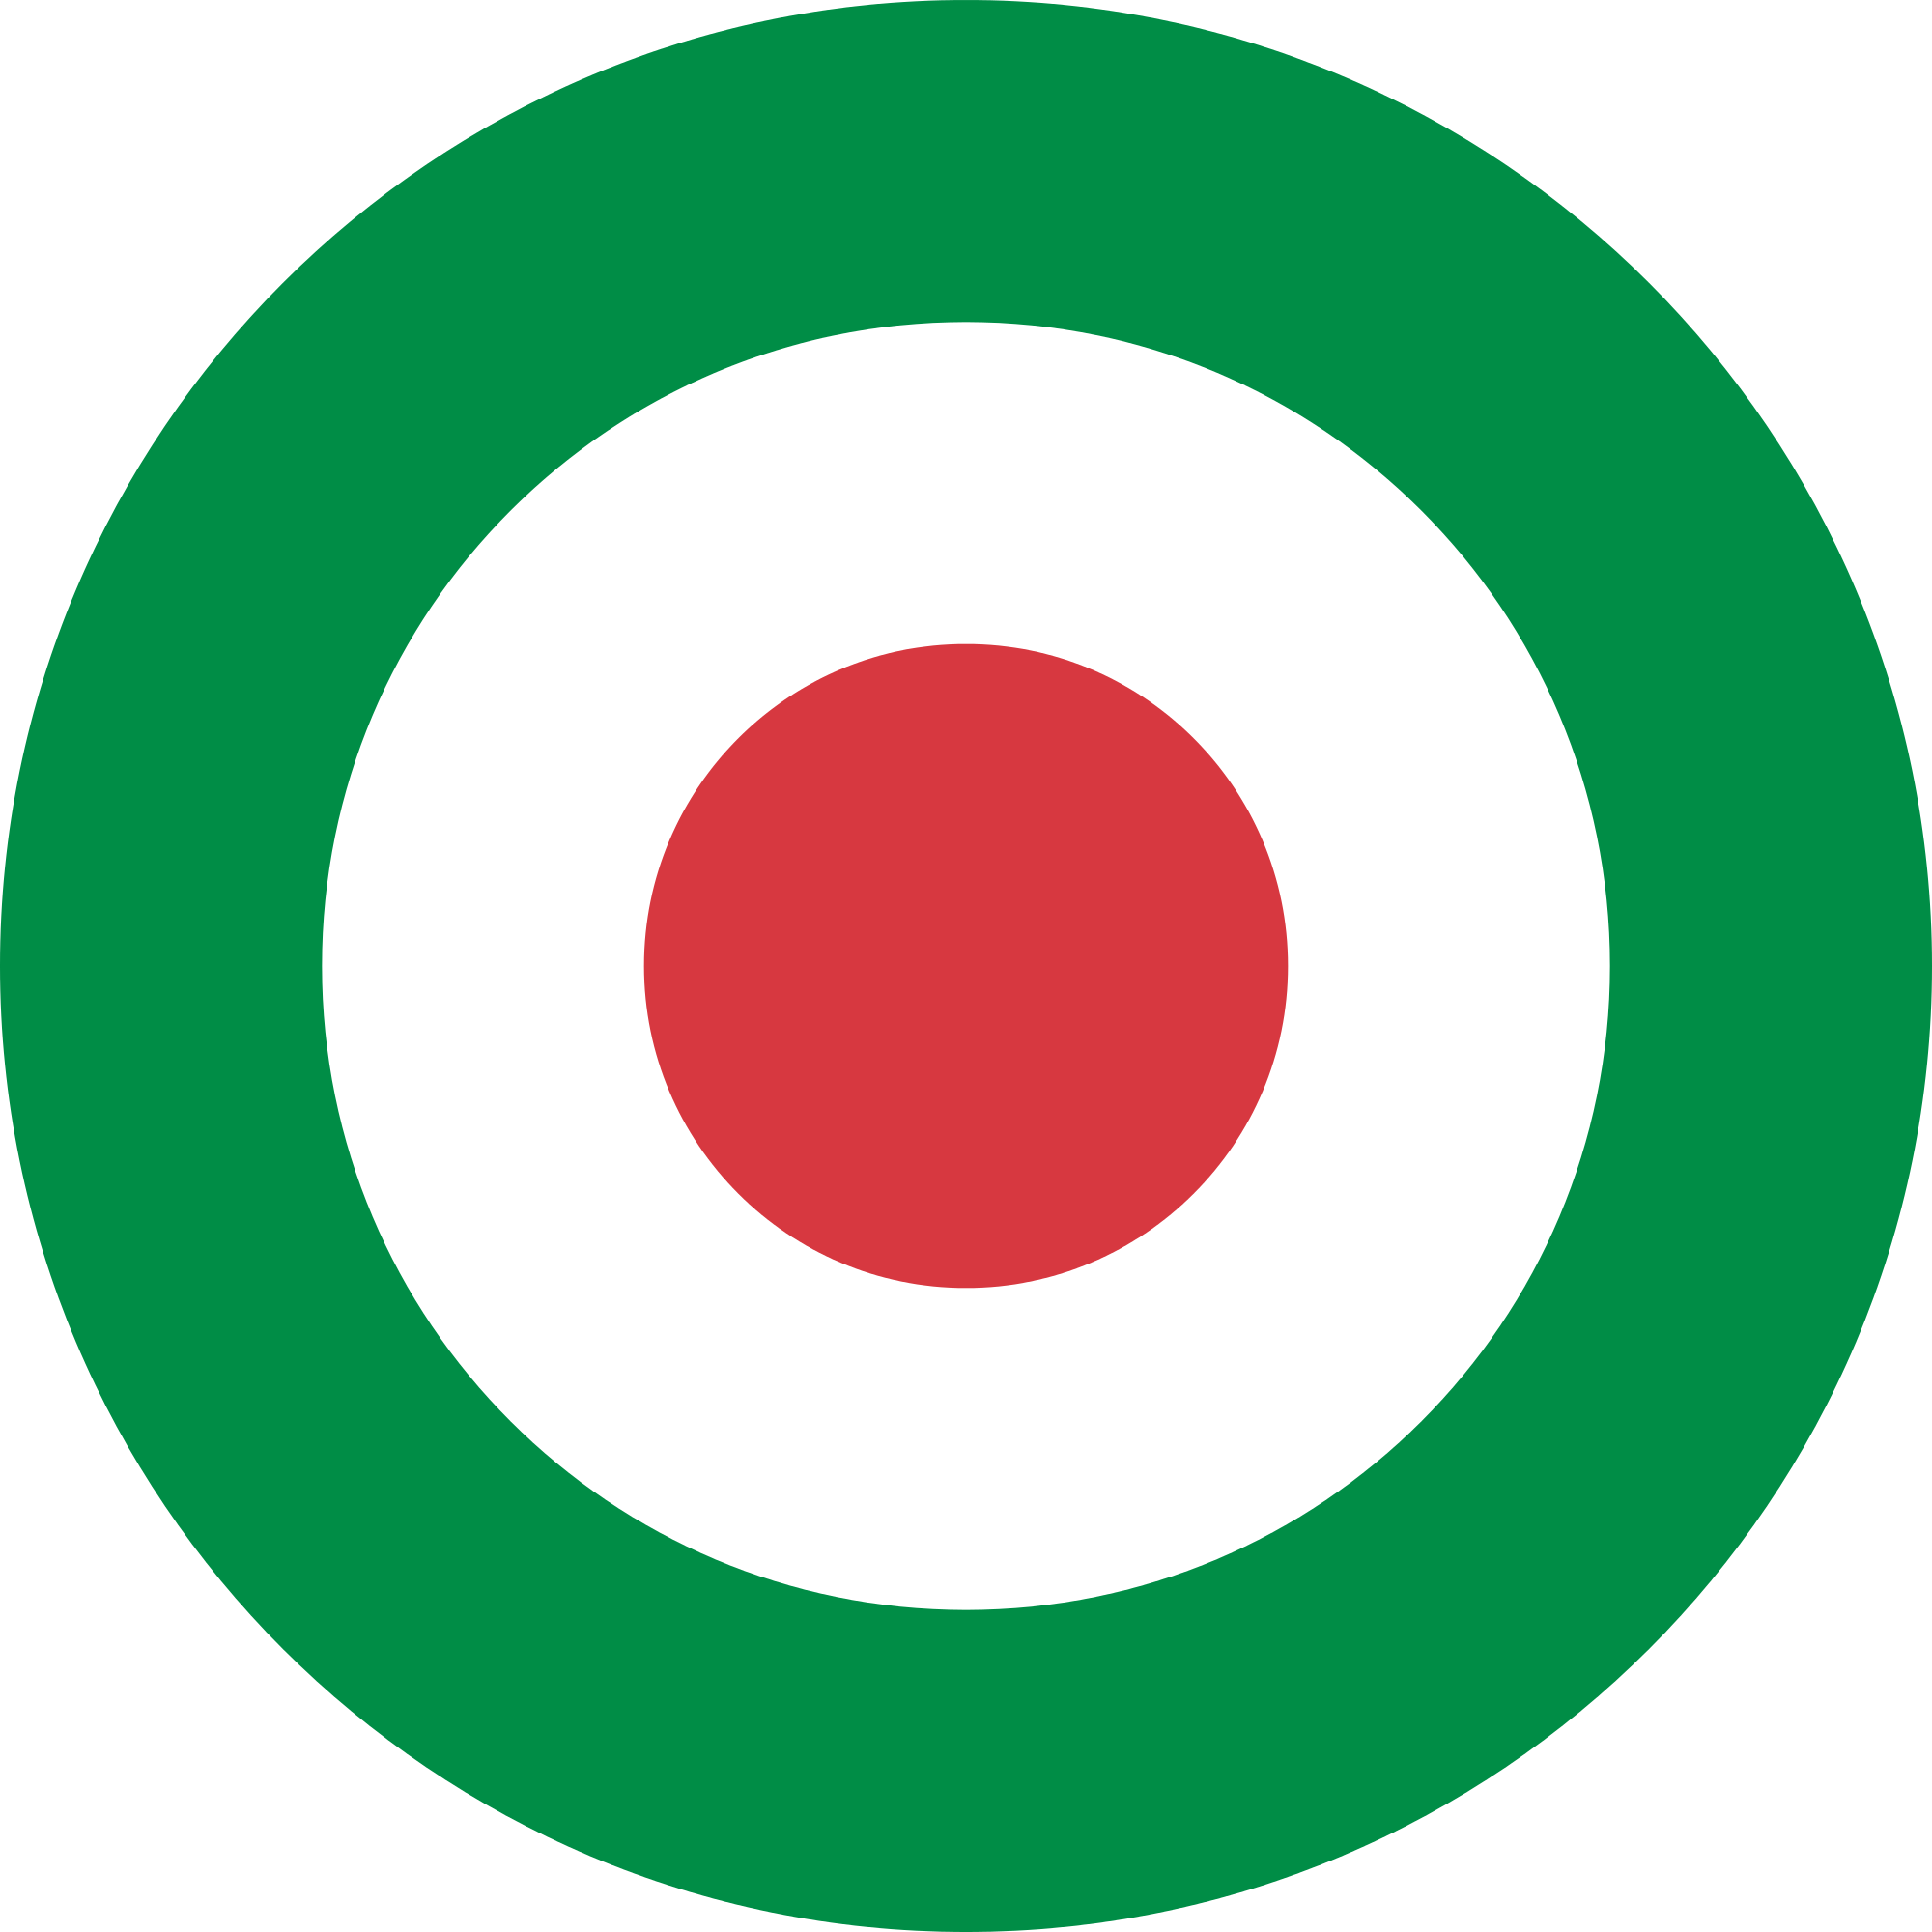 File:Roundel of the Italian Air force.svg.